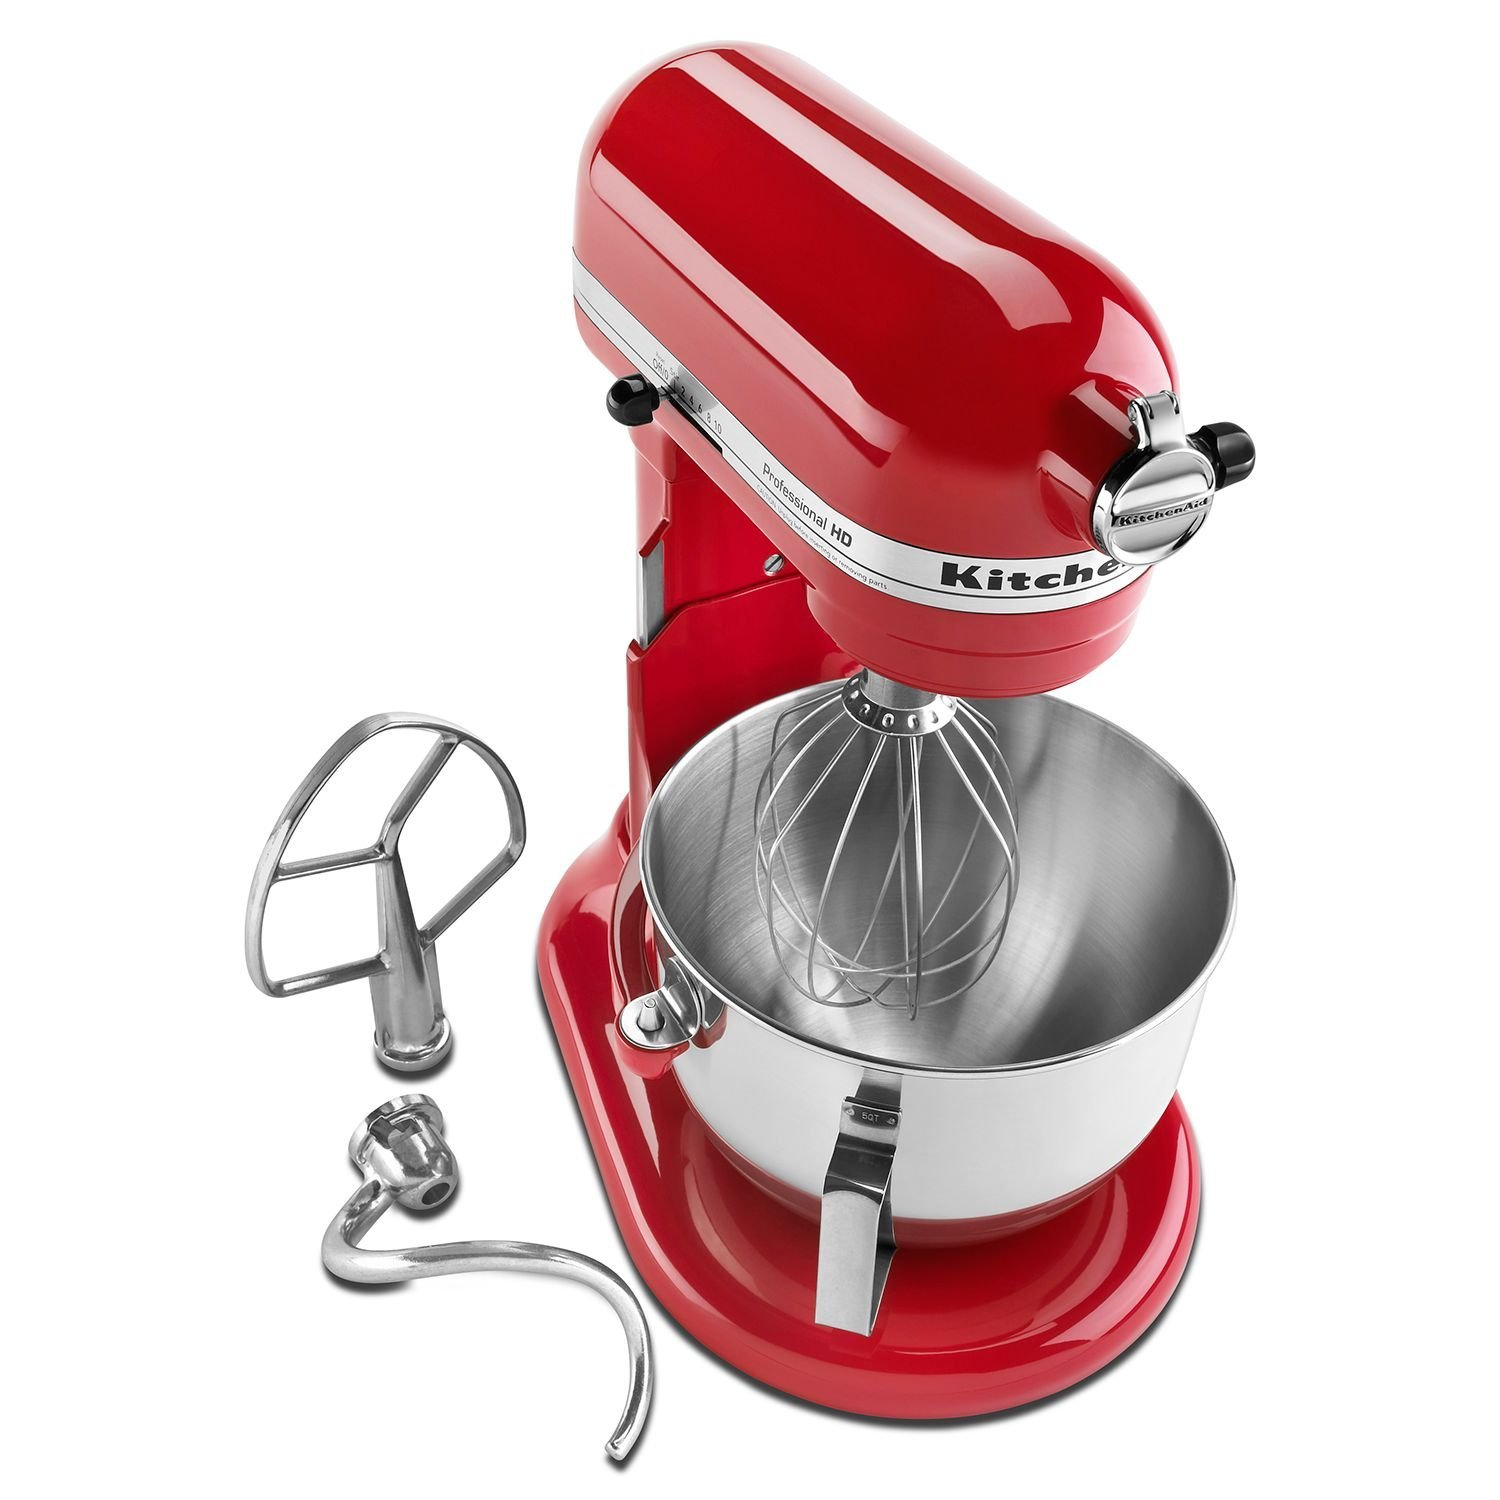 KitchenAid HD RRKG25HOXER PRO Stand Mixer Empire Red (CERTIFIED REFURBISHED)